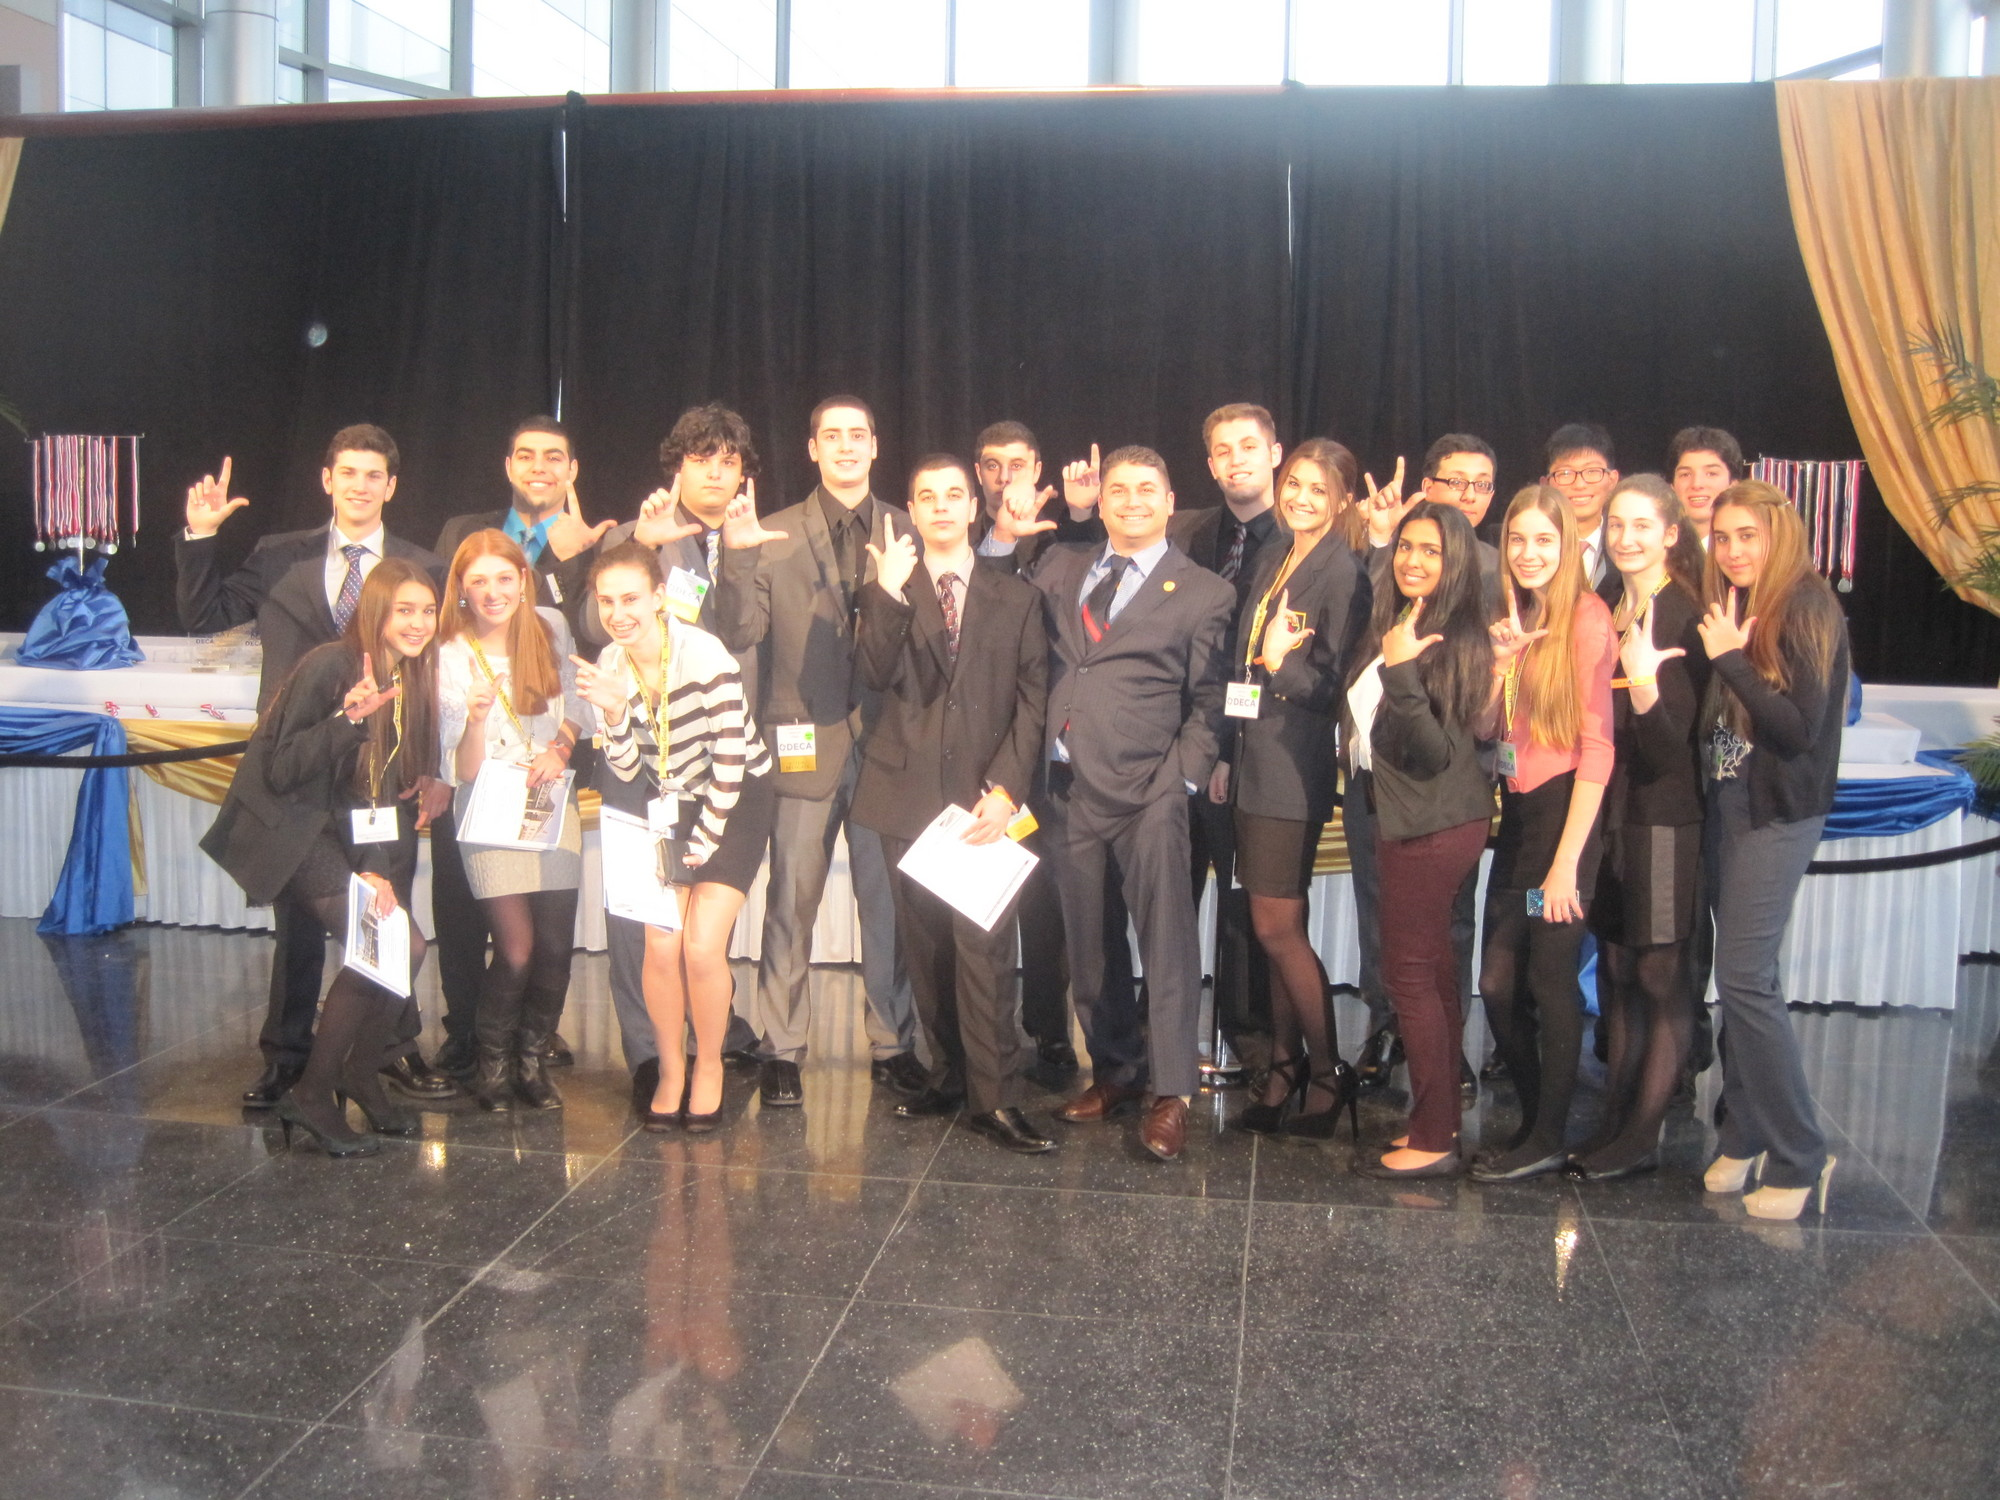 Lawrence High School DECA members continue to succeed. From left in back, Jonathan Scott, Akil Mavruk, Jacob Penzer, Isaac Amos, Jesse Friedlander, Jake Bernstein, Thomas Lira, Ryan Bae and Jonathan Rutchik. From left in front row, Victoria DiCeglio, Jessica Beyer, Maxine Kastriner, Noah Friedlander, Mark Albin, DECA Advisor, Lauren Abecassis, Sophia Mohamed, Rebecca DiLuzio, Samantha Rubenstein and Danielle Diamond.